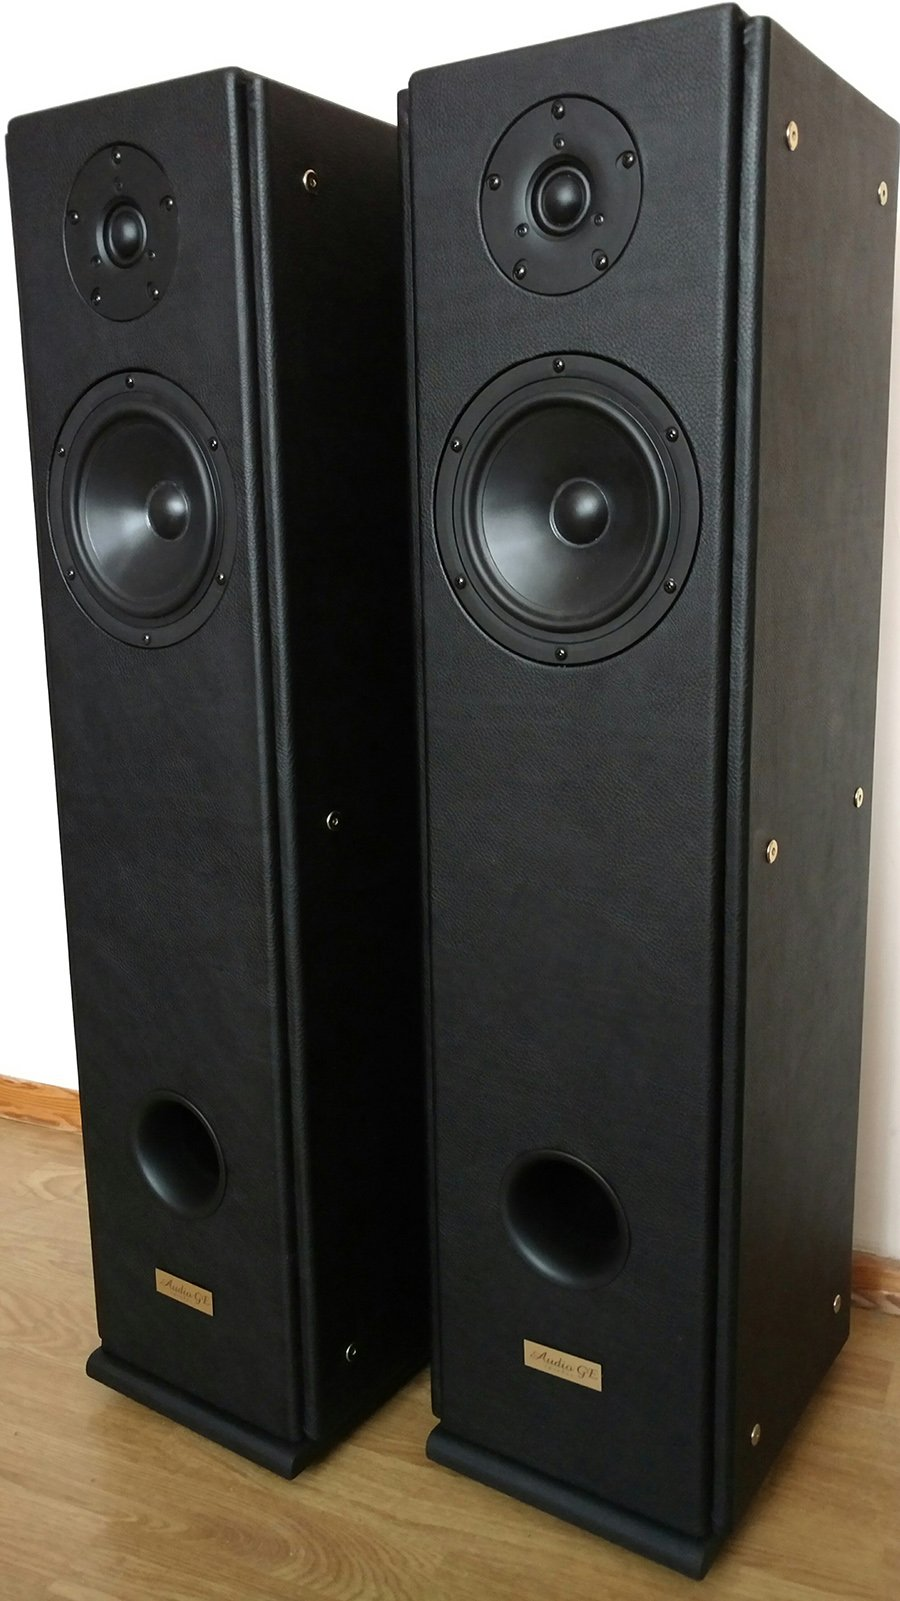 Audio Ge Sincerus 80 Loudspeakers Hifi Pig Speakers A Business With The Aim Of Producing That Could Faithfully Reproduce Quality Sound He Heard In Studio During His Childhood